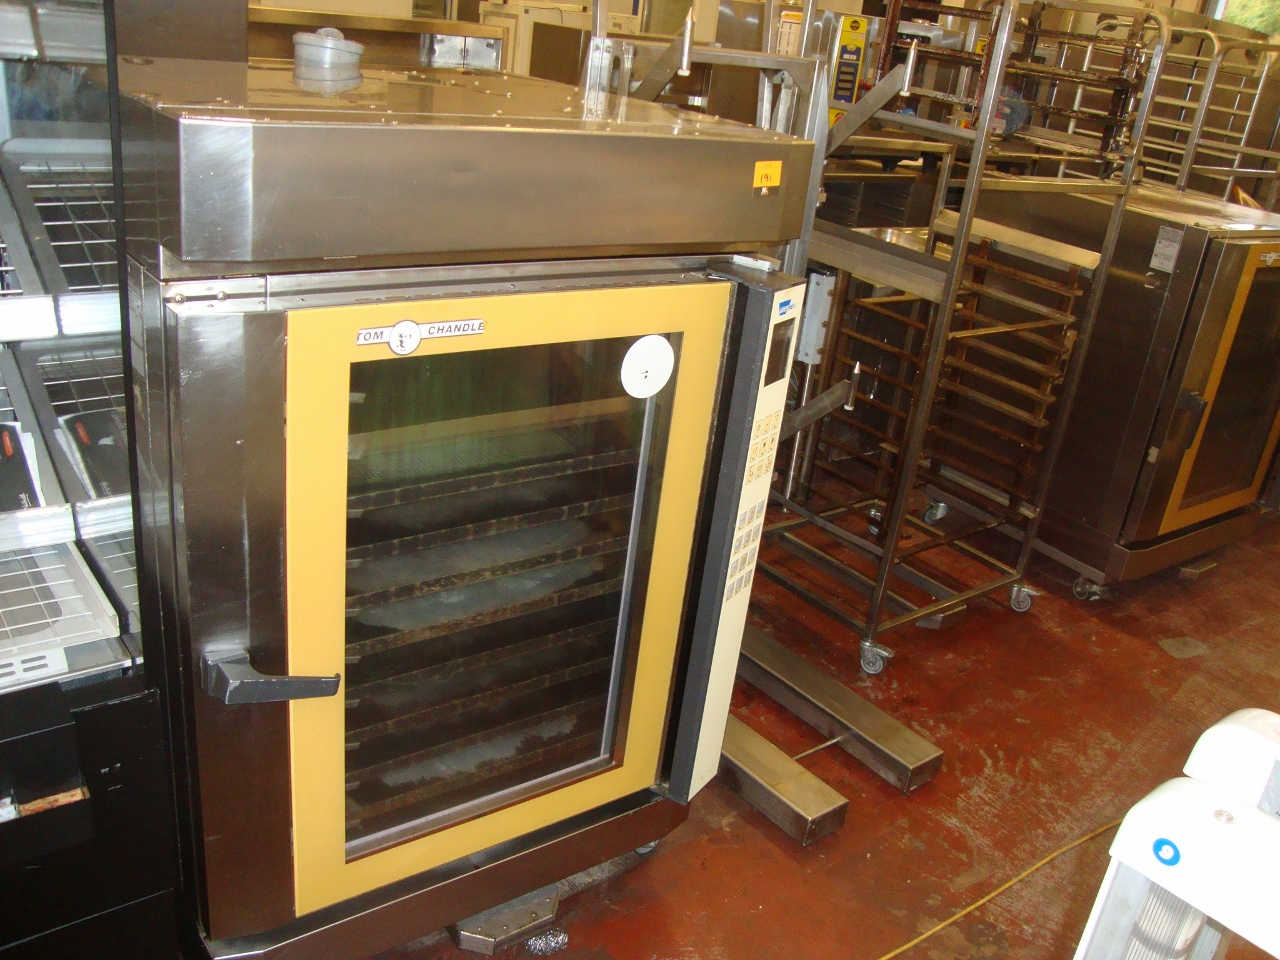 Tom Chandley Wiesheu multi tray oven system type M16E2TS350 including  #B28819